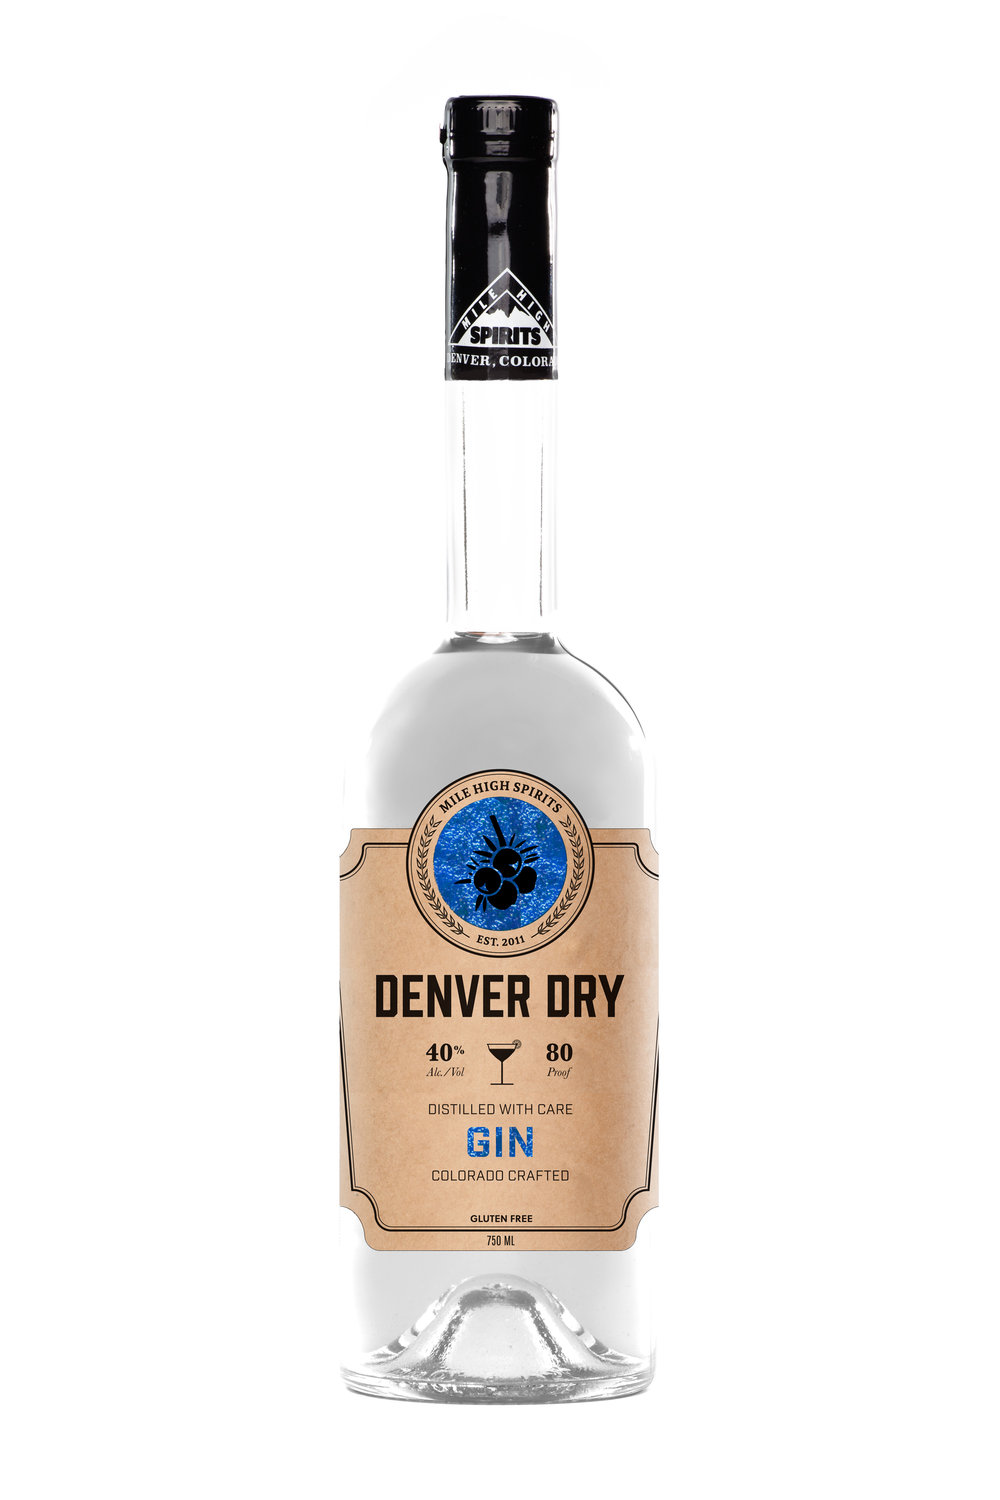 Denver Dry Gin Denver Dry brilliantly combines over three centuries of tradition to deliver something truly remarkable. Paying homage to traditional London Dry Gins, Denver Dry puts forward a complex pallet of Juniper, Citrus, Coriander, and Grains of Paradise. Classic to the bone, perfect for citrus inspired cocktails, this refreshing gin will satisfy any Gin lovers palate.